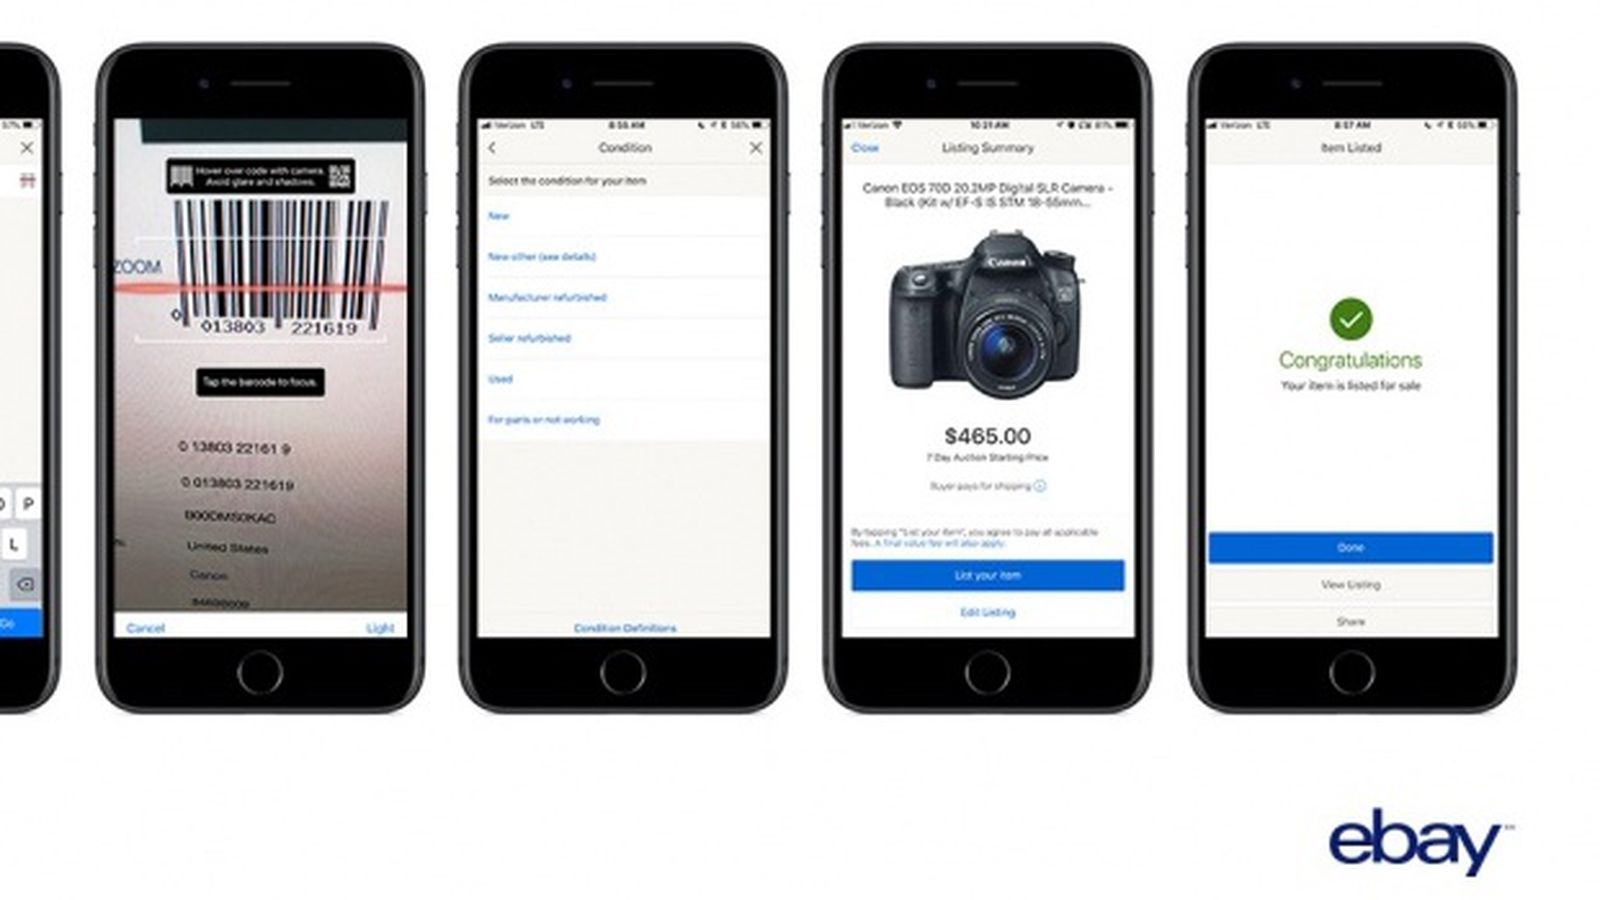 Ebay For Ios Gains Barcode Scanning Feature That Can Complete Listing Process Within Seconds Macrumors